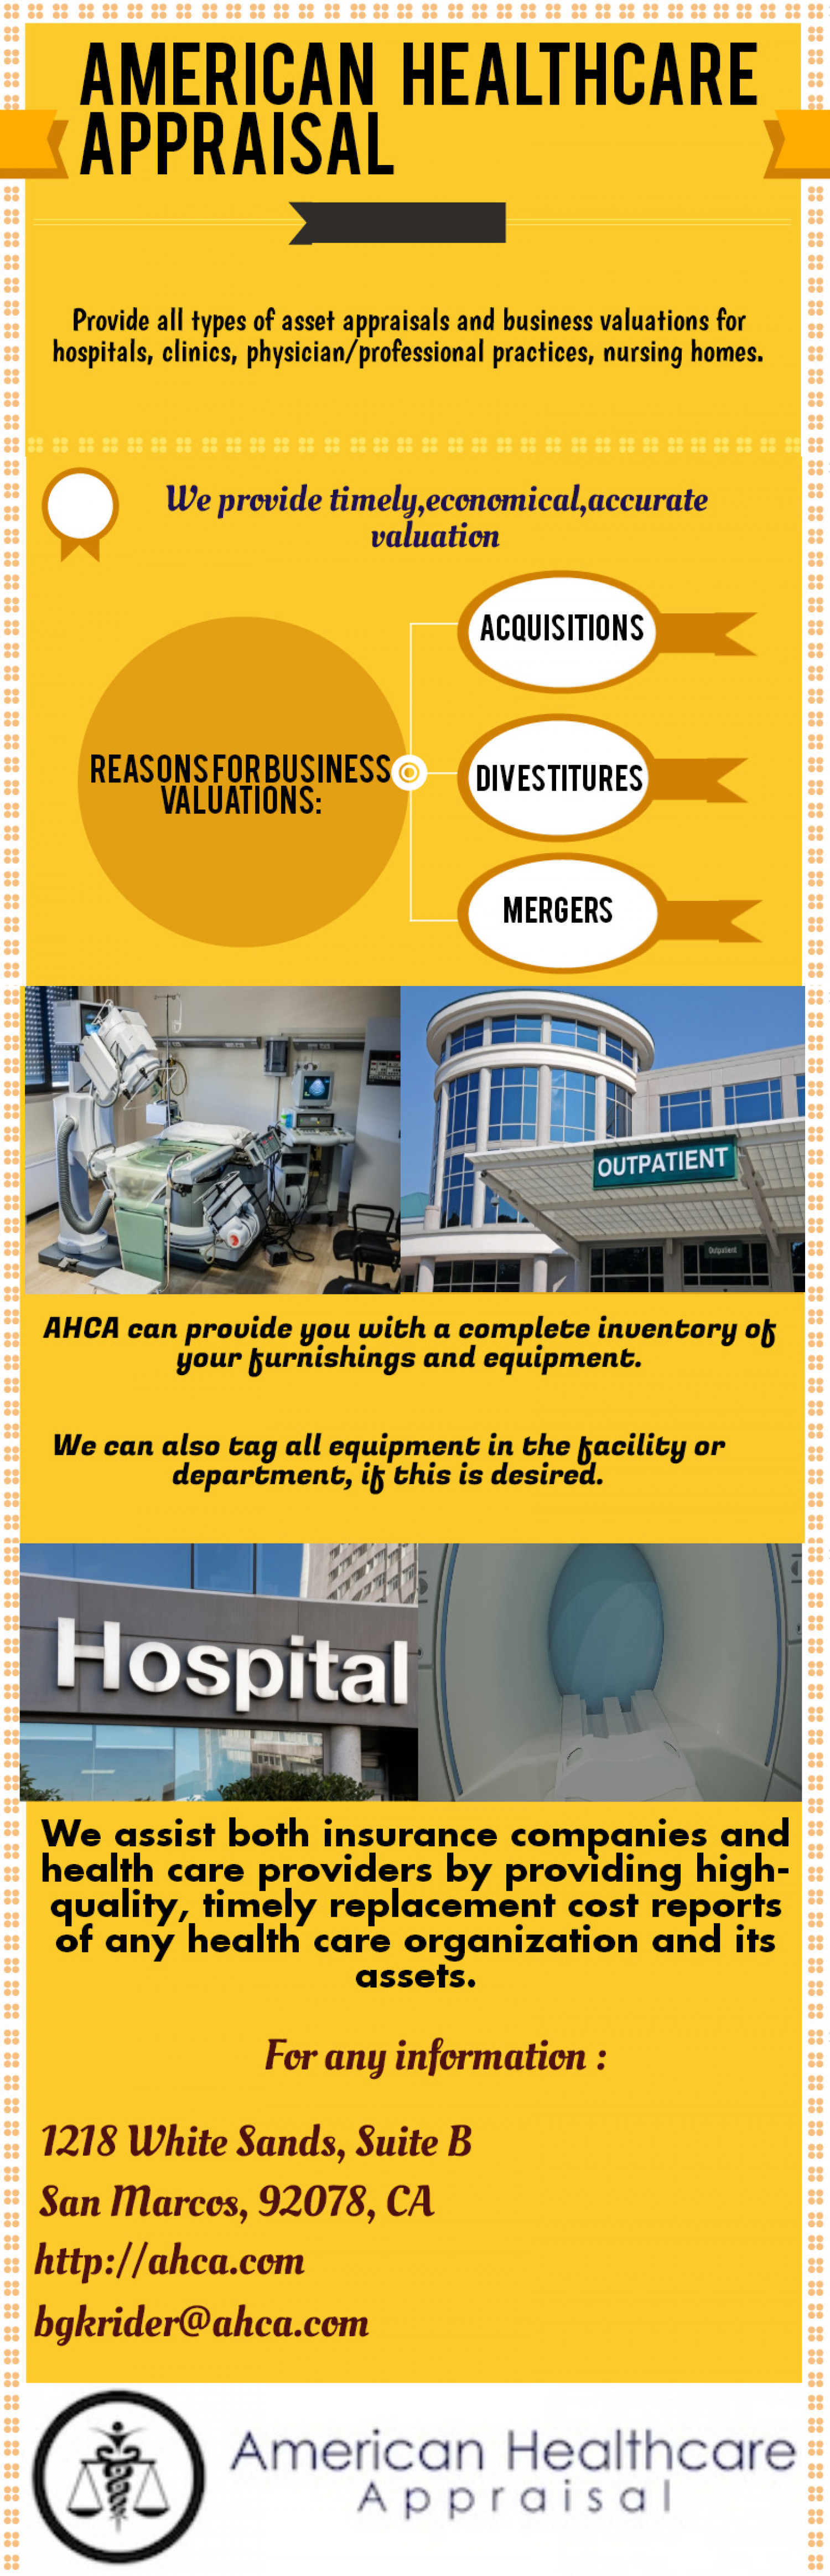 American Healthcare Appraisal Infographic